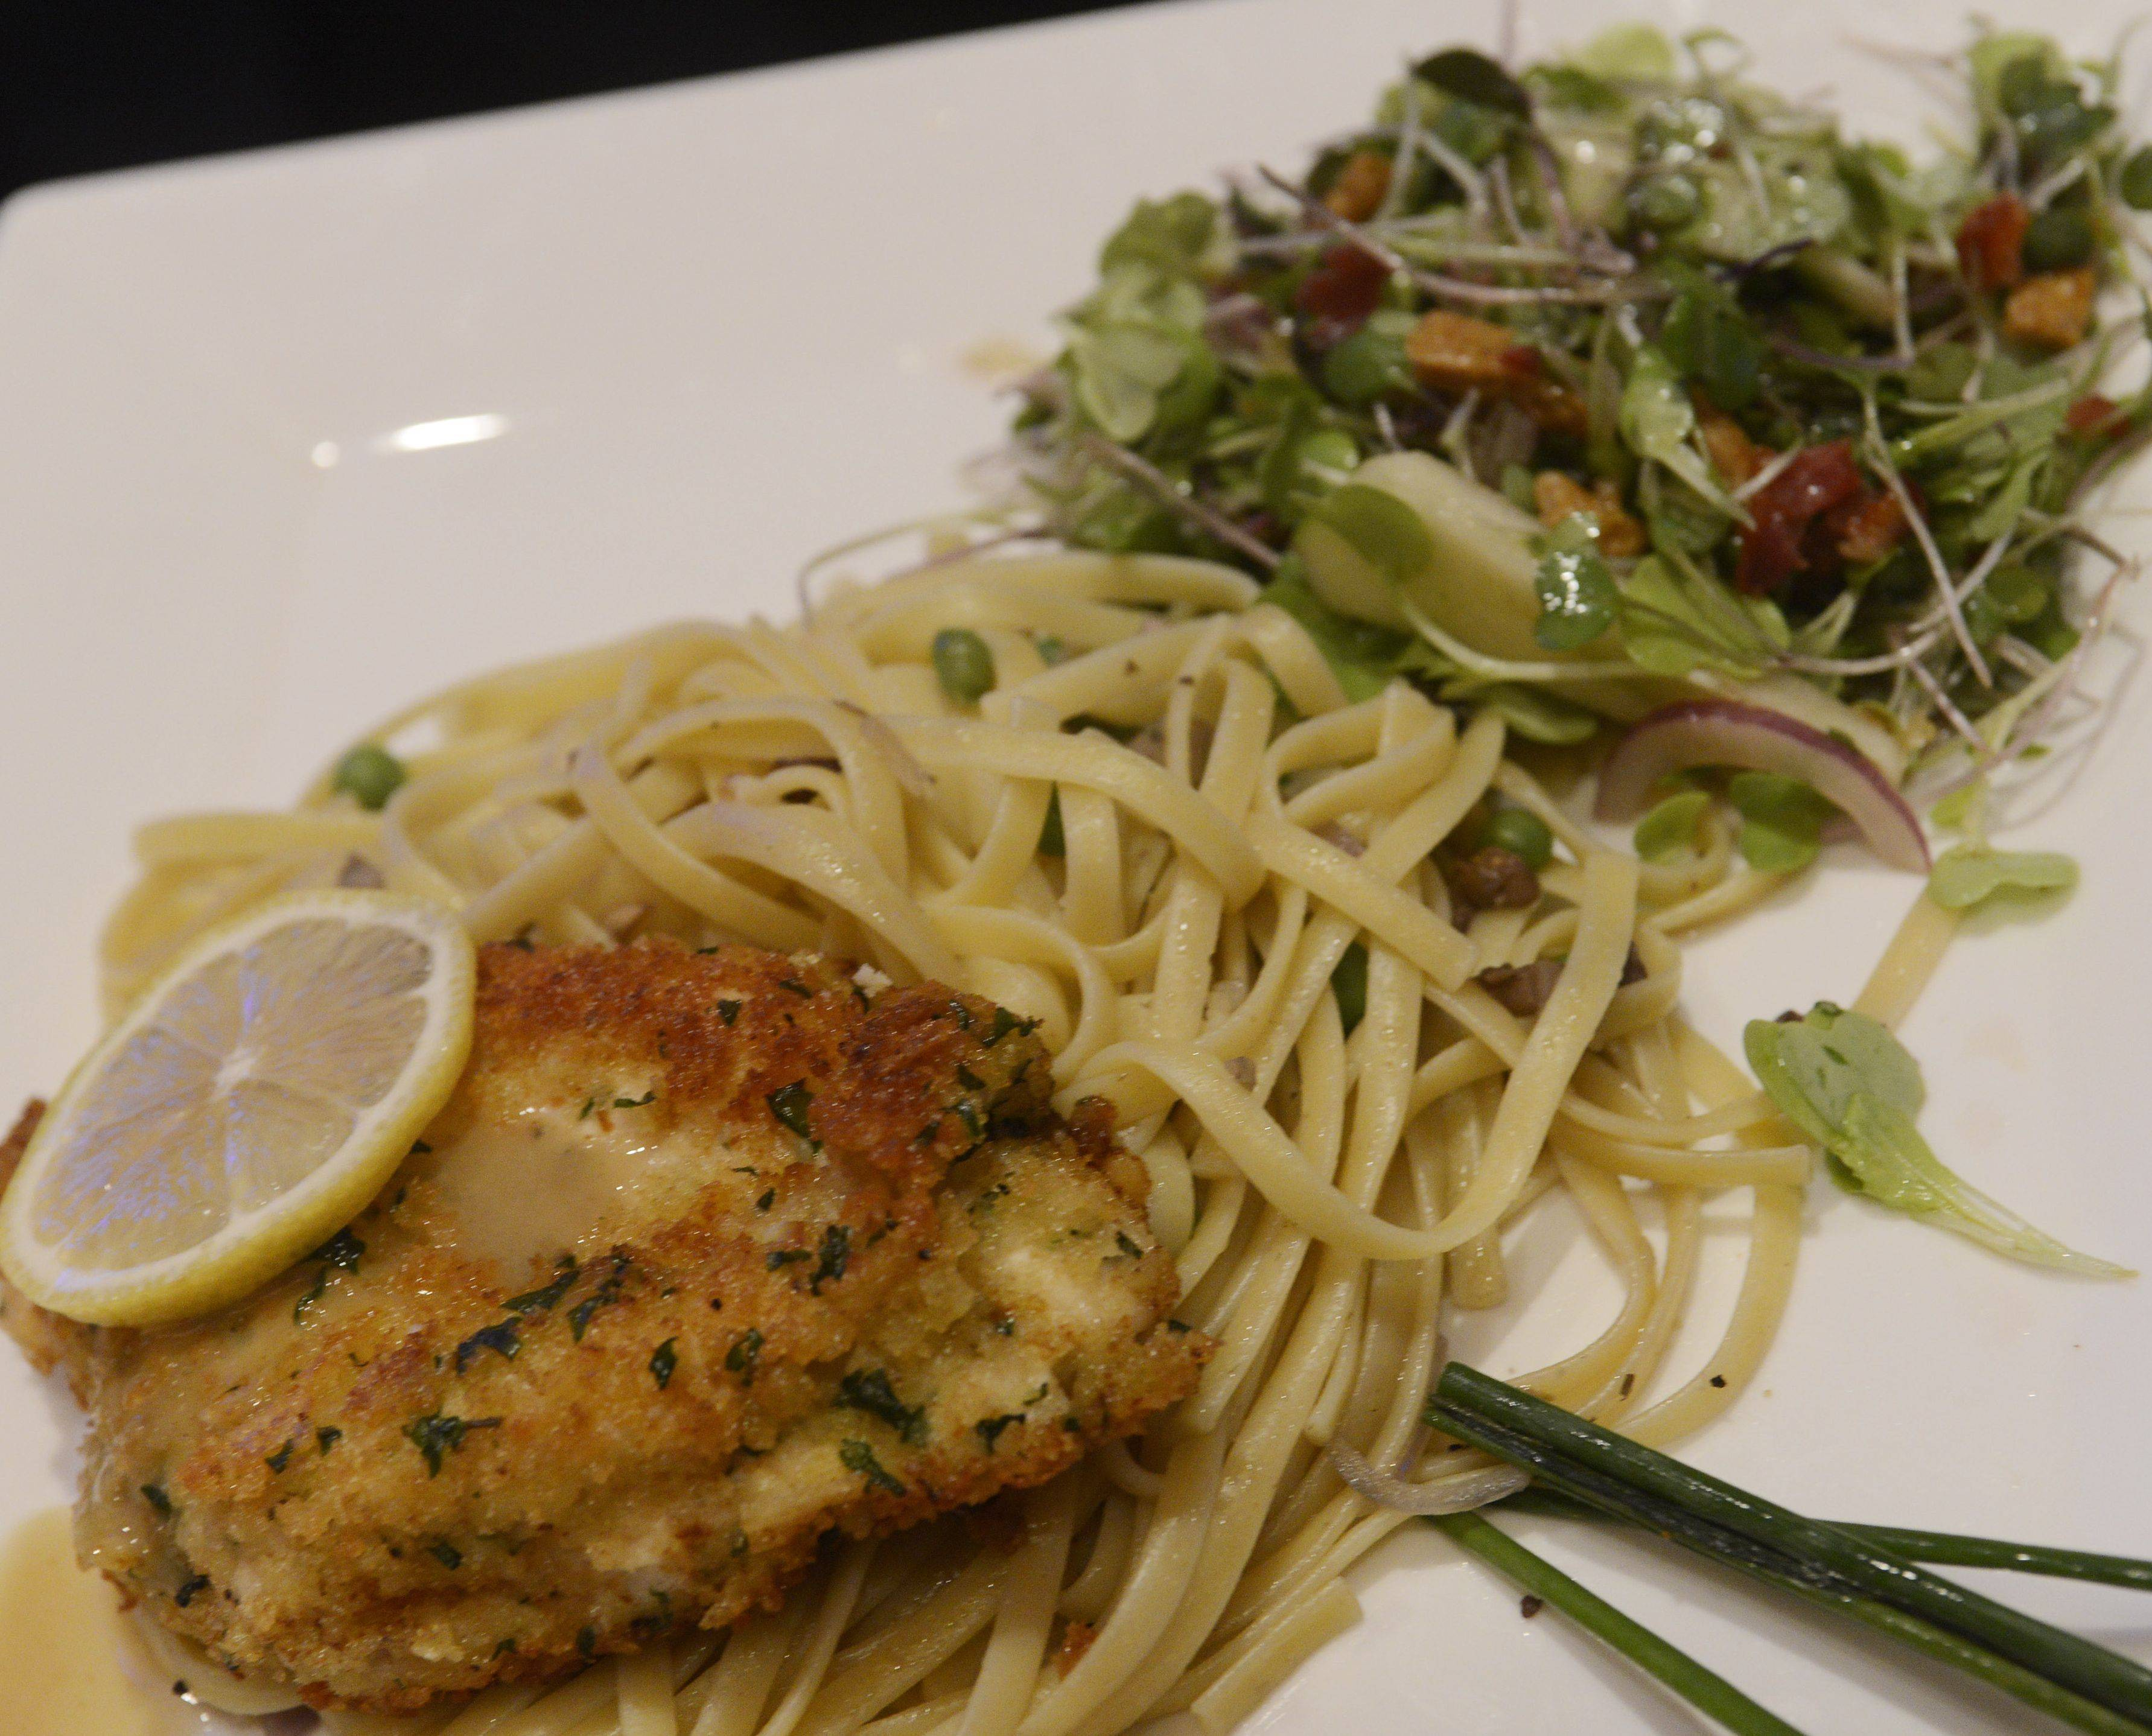 Lori Wiktorek plated Lemon Chicken Scallopini over Mushroom-Pea Pasta and Micro Green Salad during the Daily Herald Cook of the Week Cookoff finals.